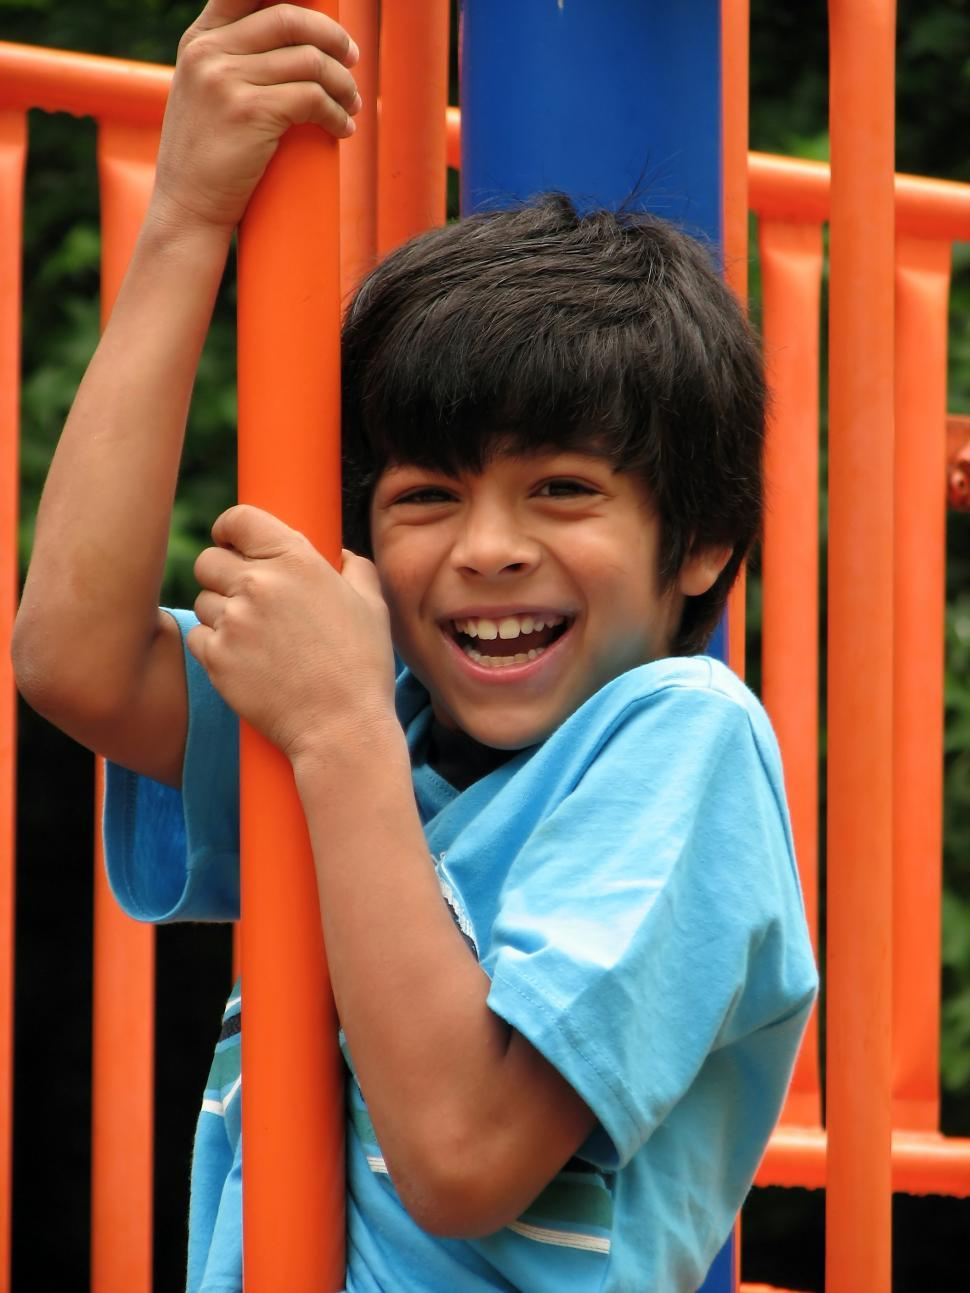 Download Free Stock HD Photo of A young latino boy playing on a playground Online